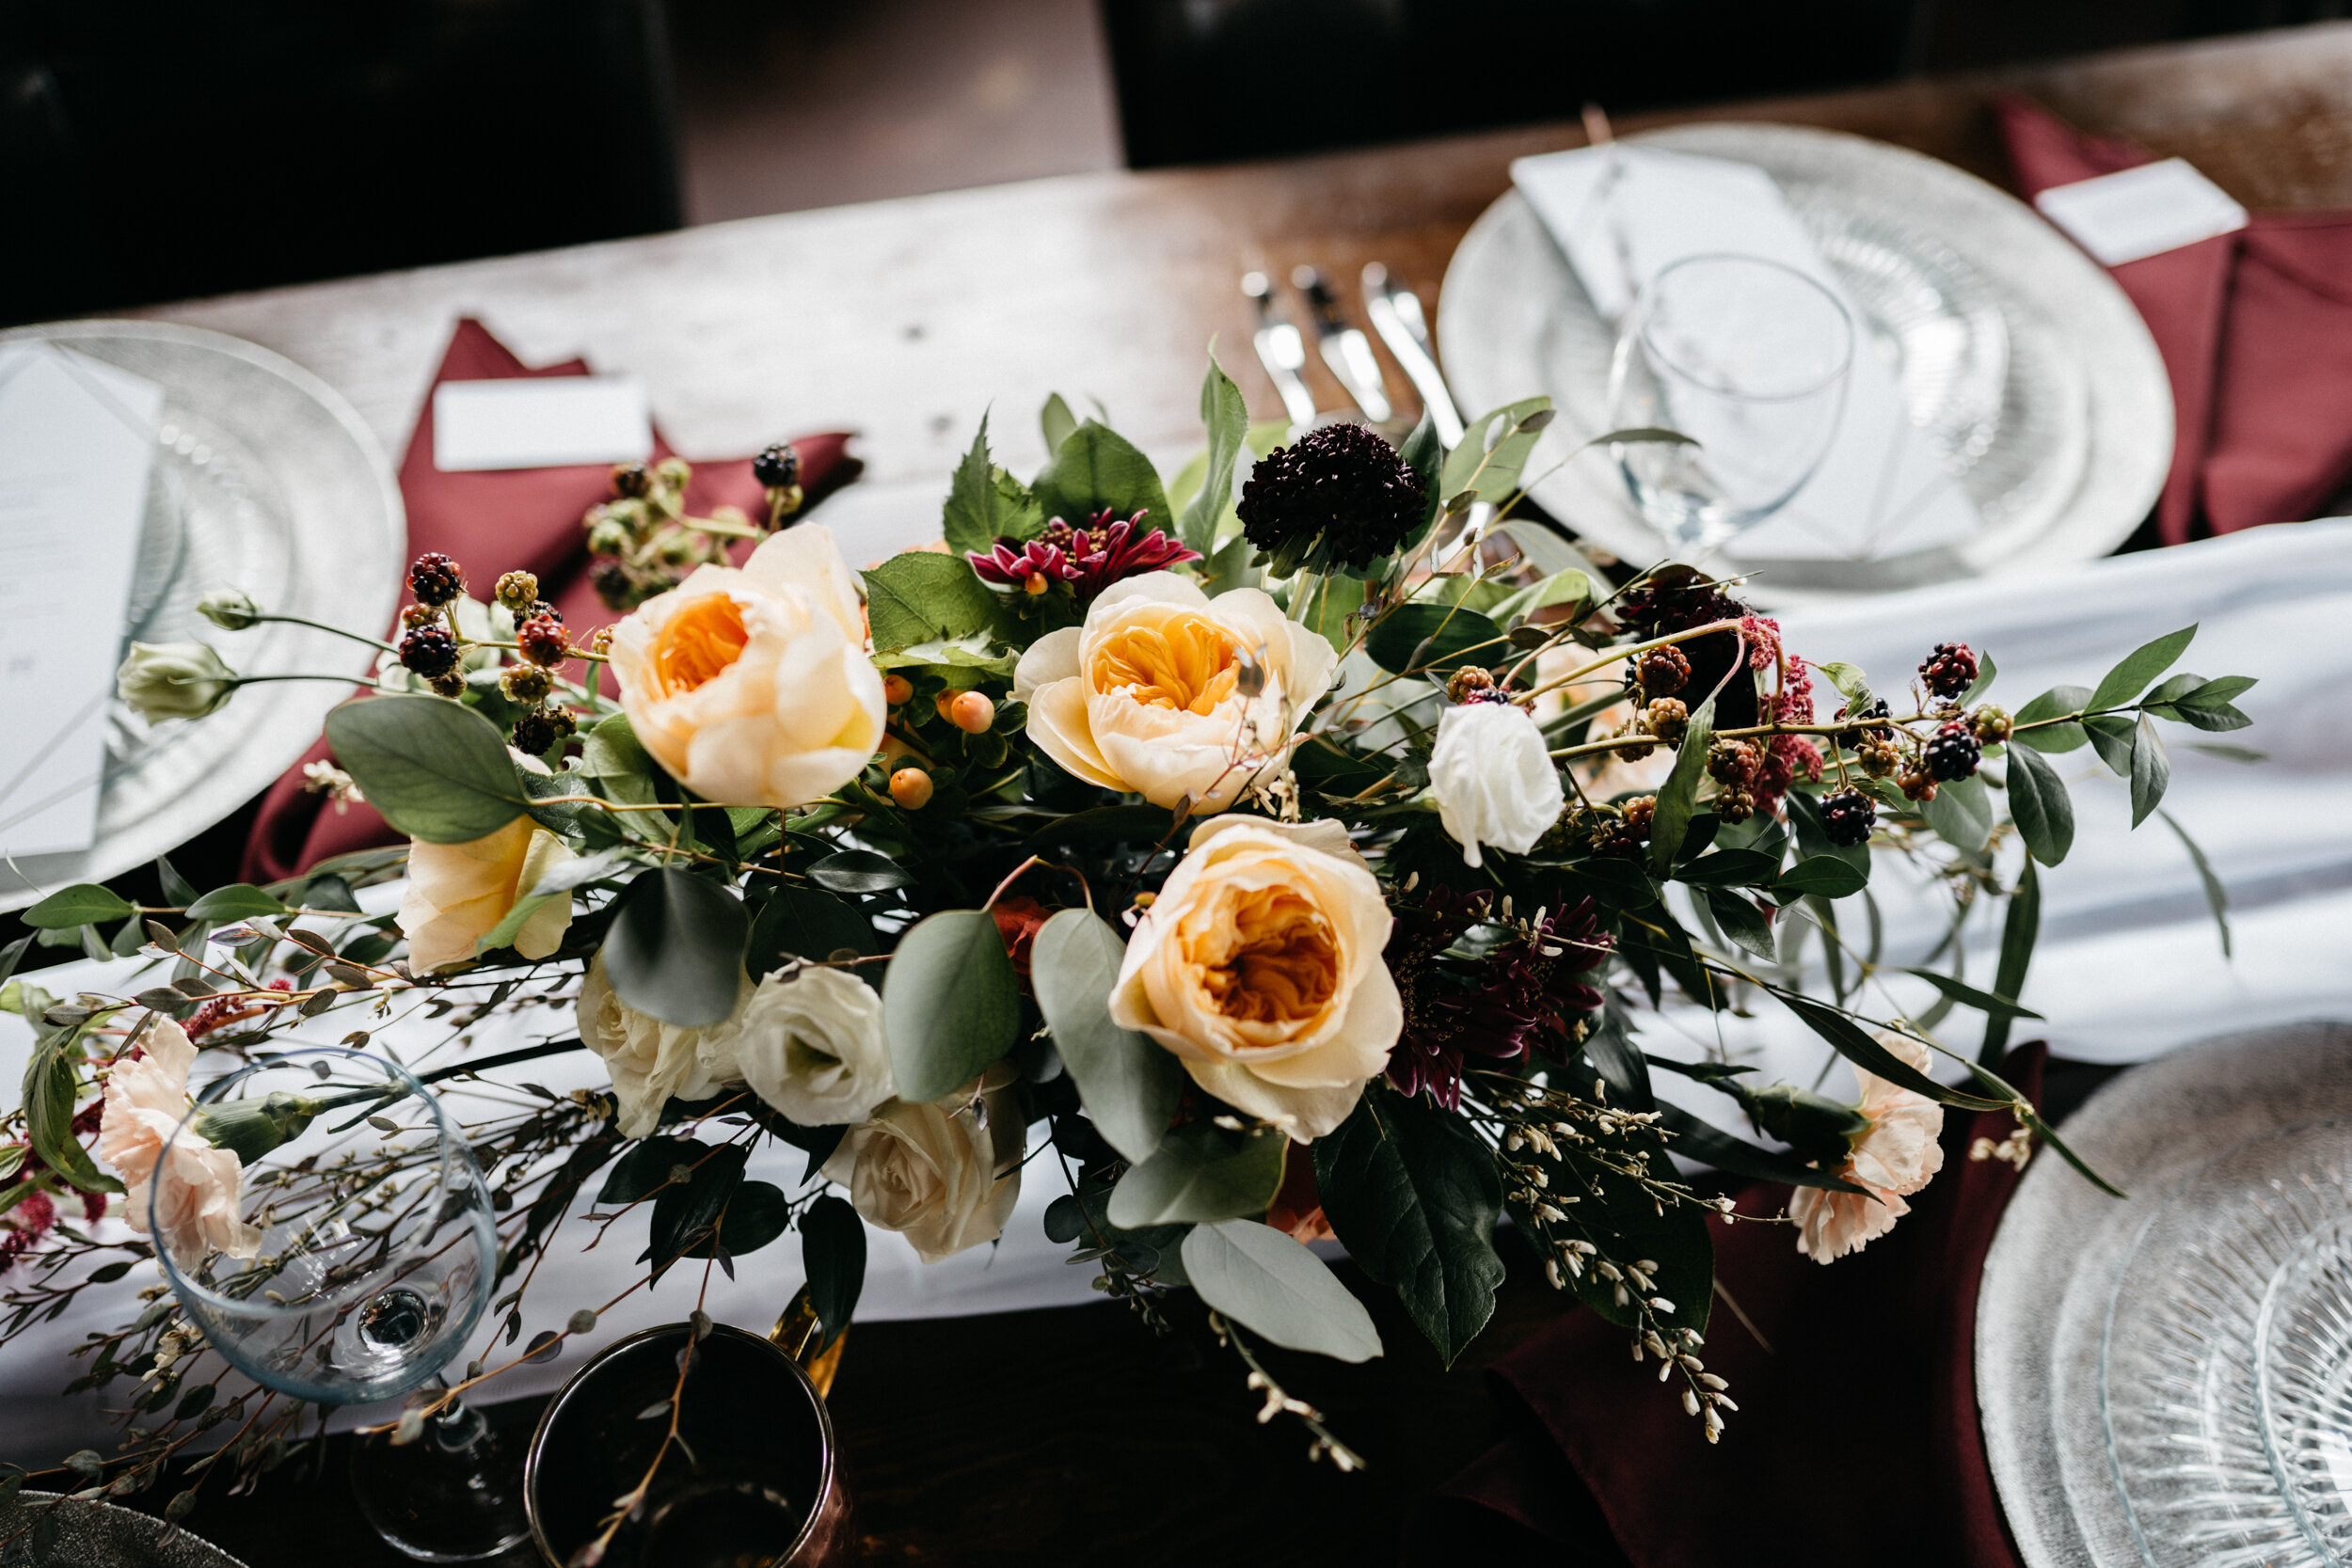 Table details for moody, romantic wedding - 3